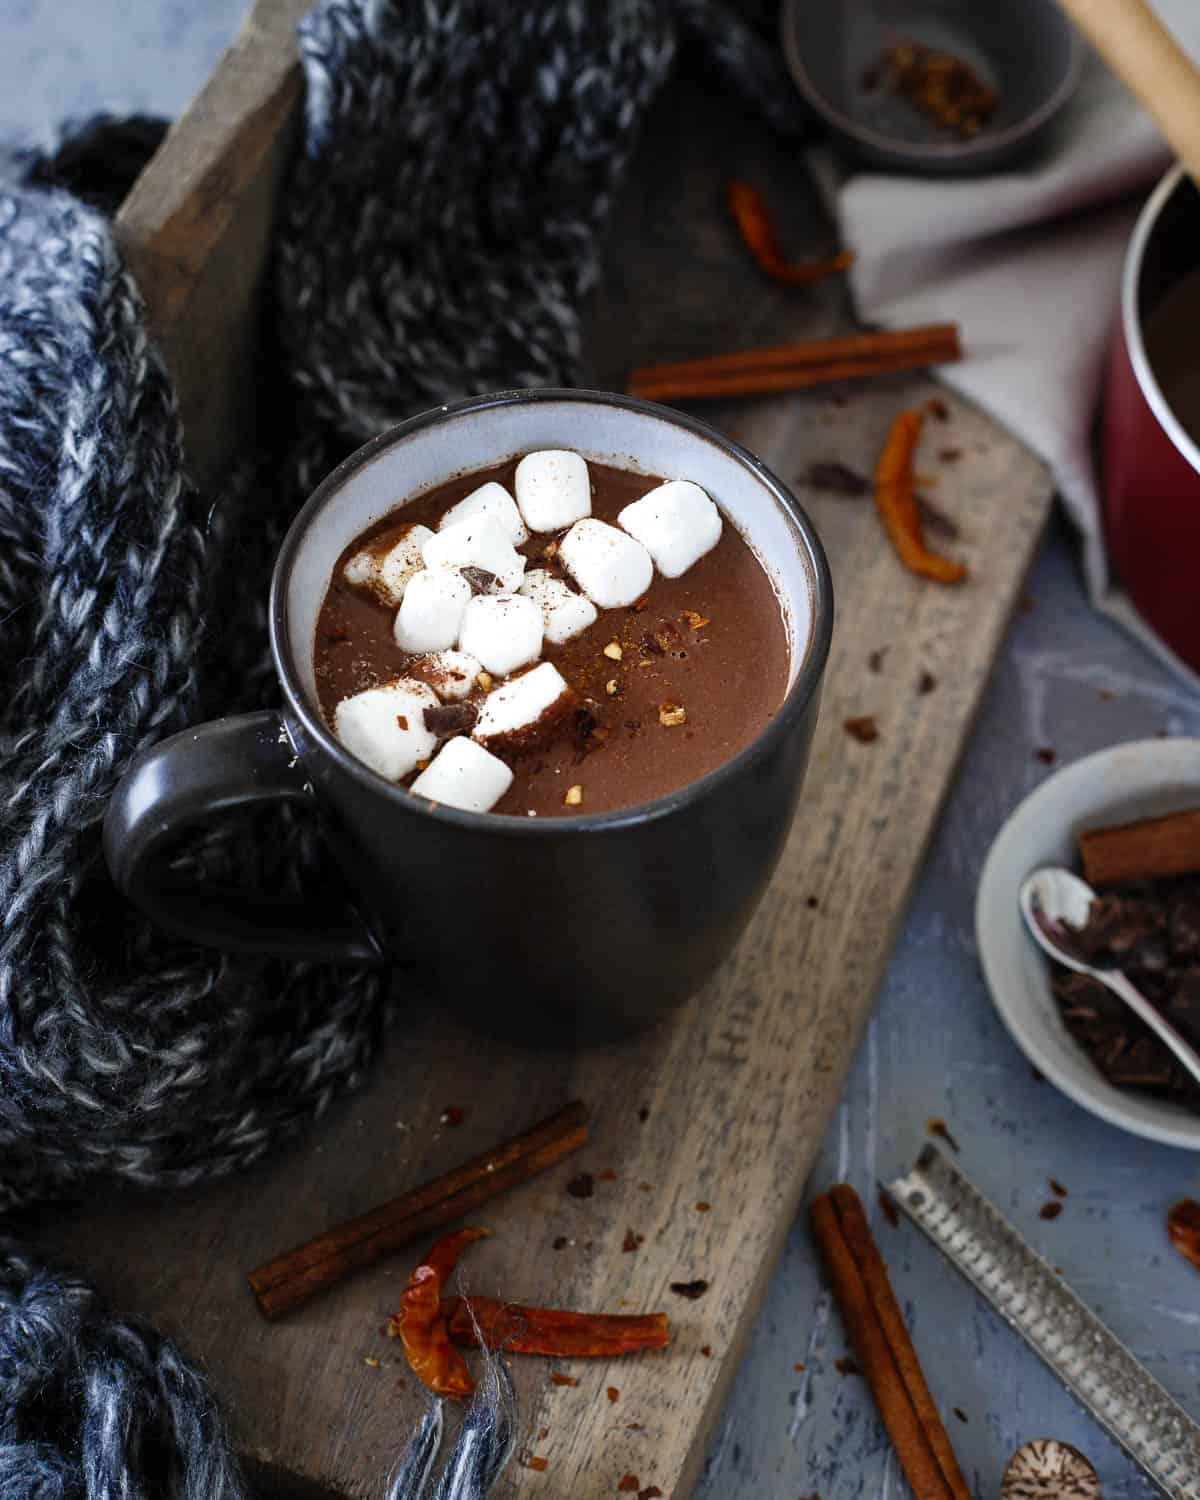 A quick recipe for rich, creamy, and slightly spicy Mexican hot chocolate. One sip and you'll never go back to those packets again.